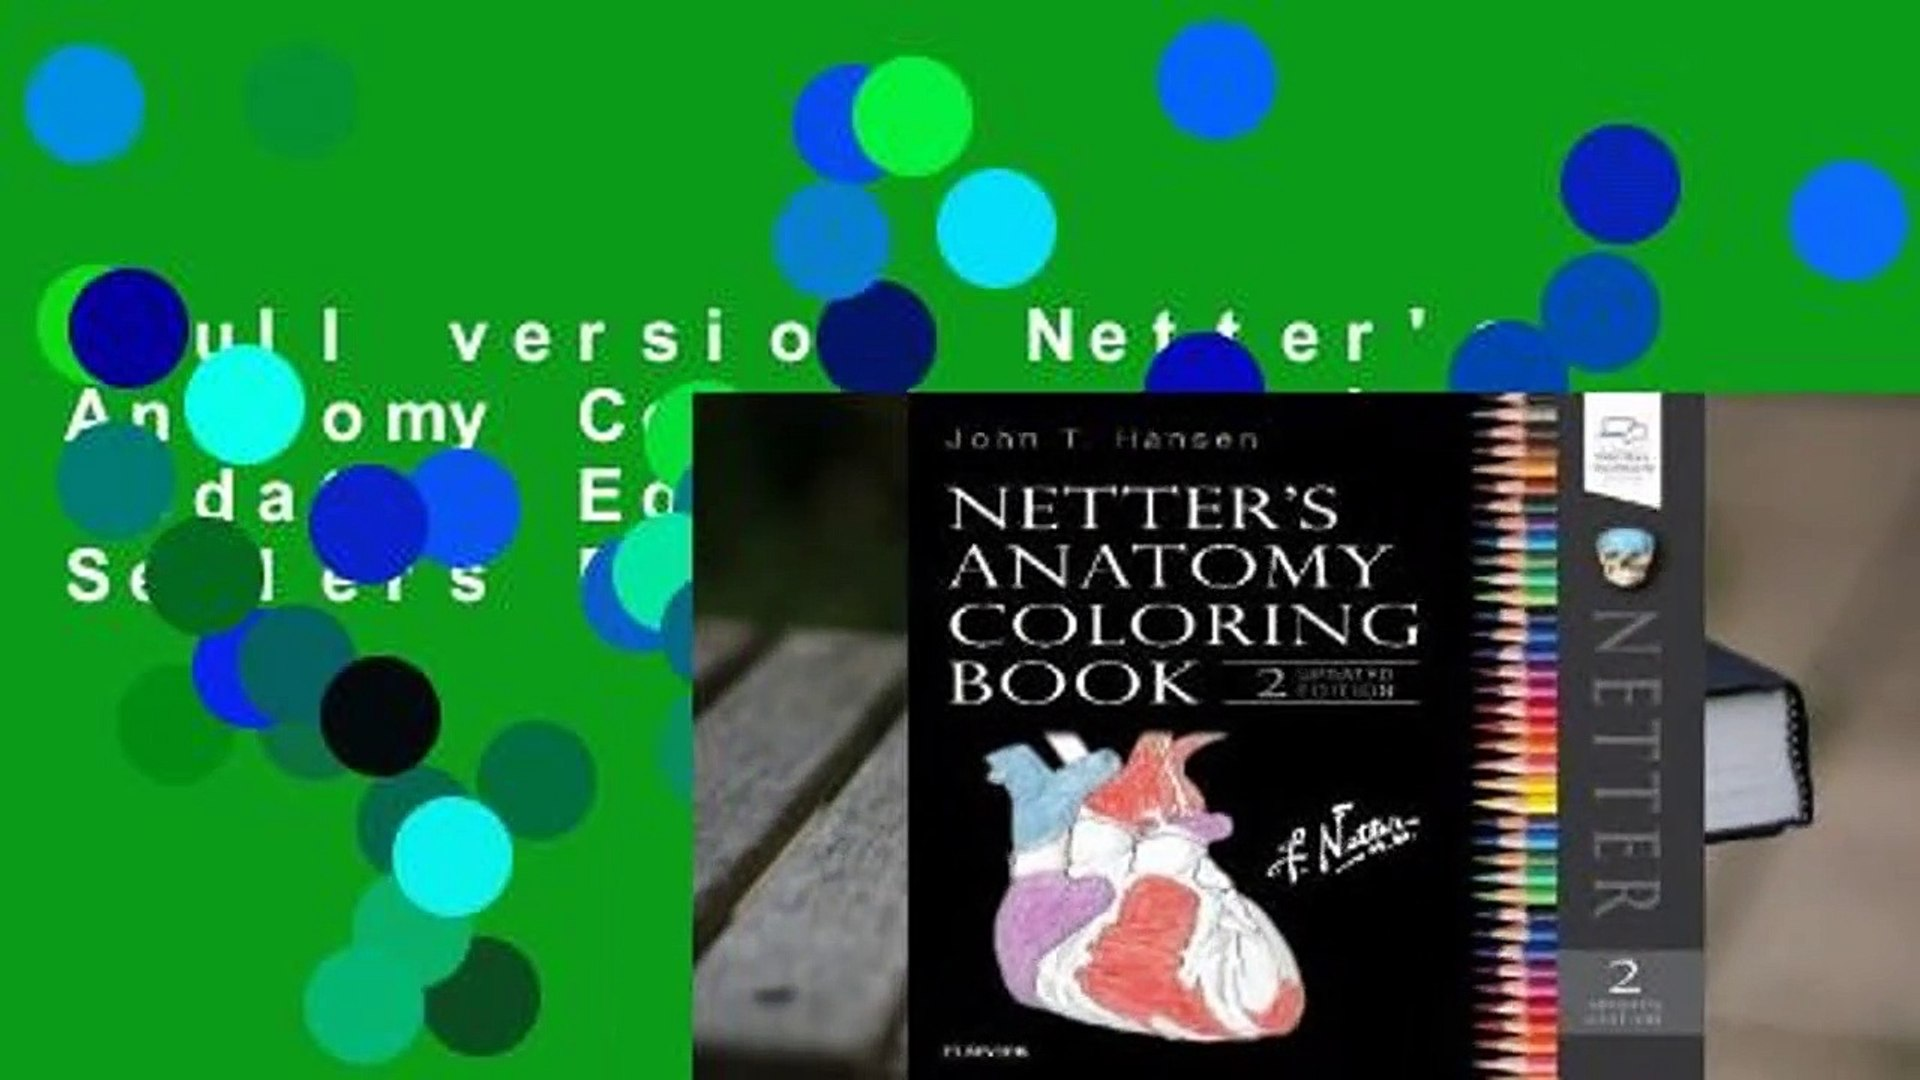 Full Version Netter S Anatomy Coloring Book Updated Edition Best Sellers Rank 1 Video Dailymotion